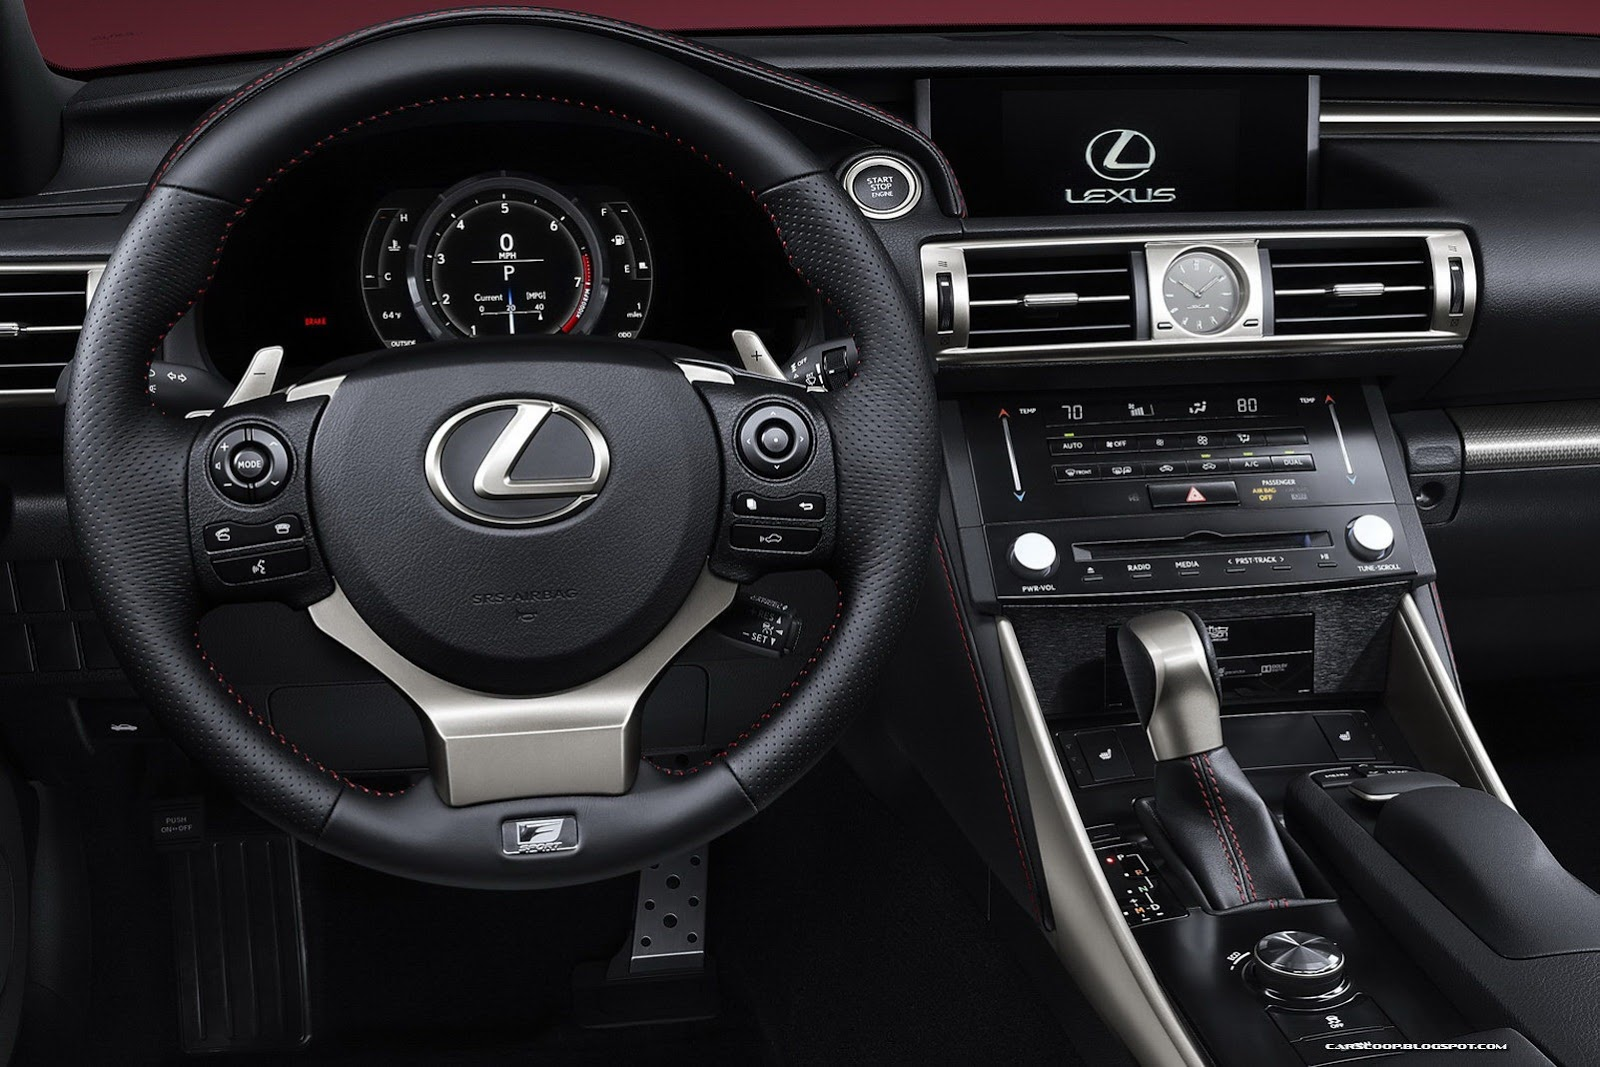 2014 Lexus IS F-Sport – Interior